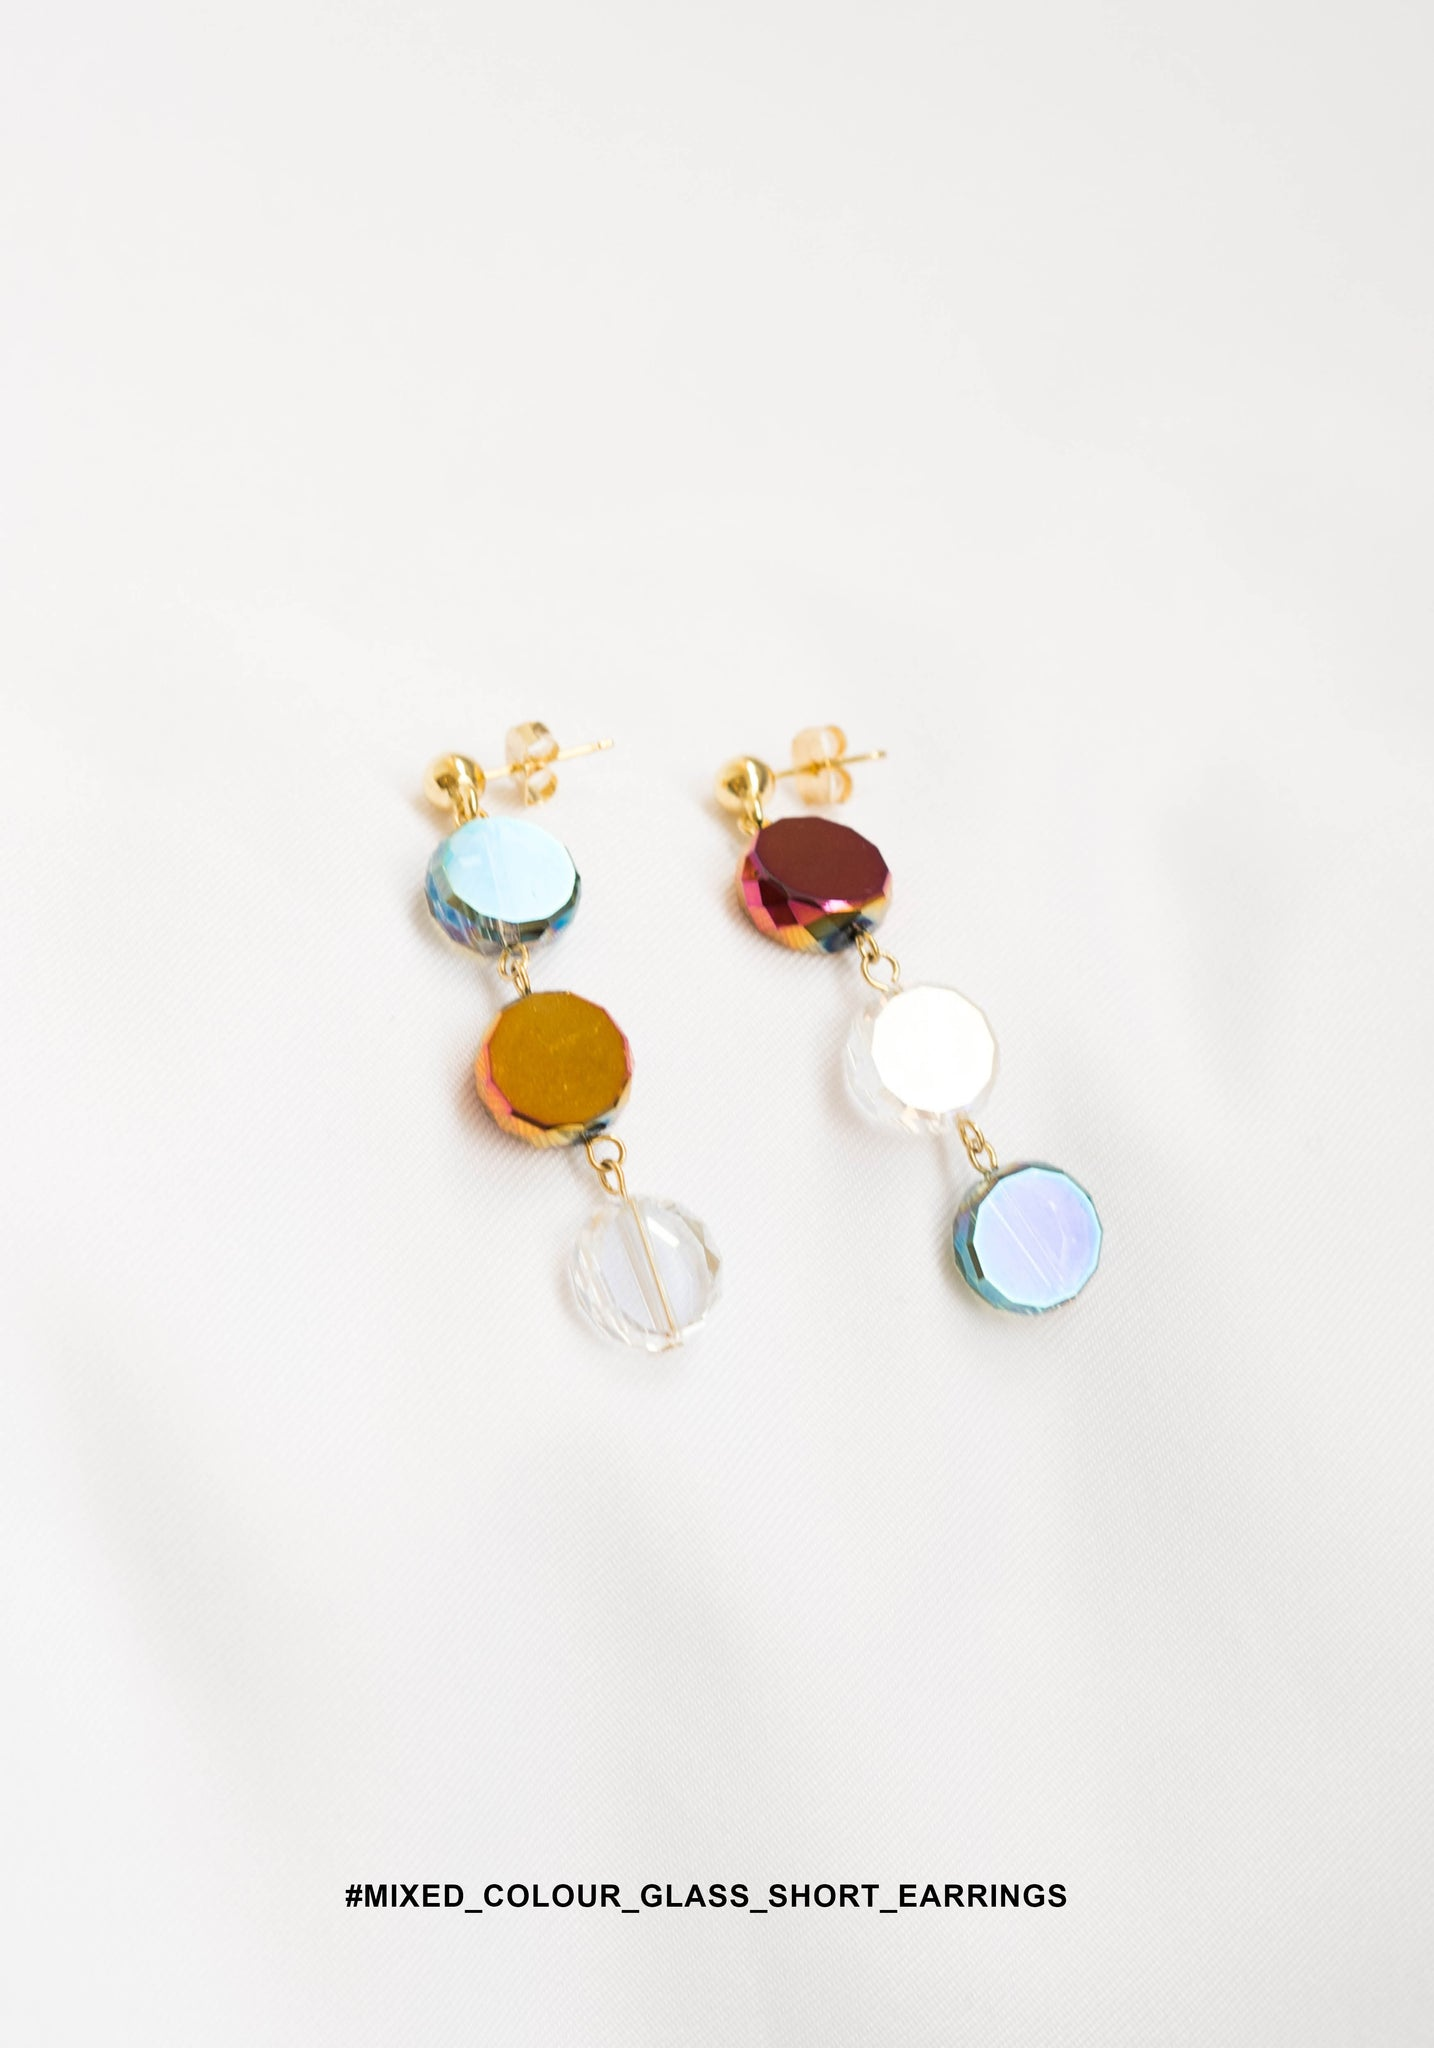 Mixed Colour Glass Short Earrings - whoami